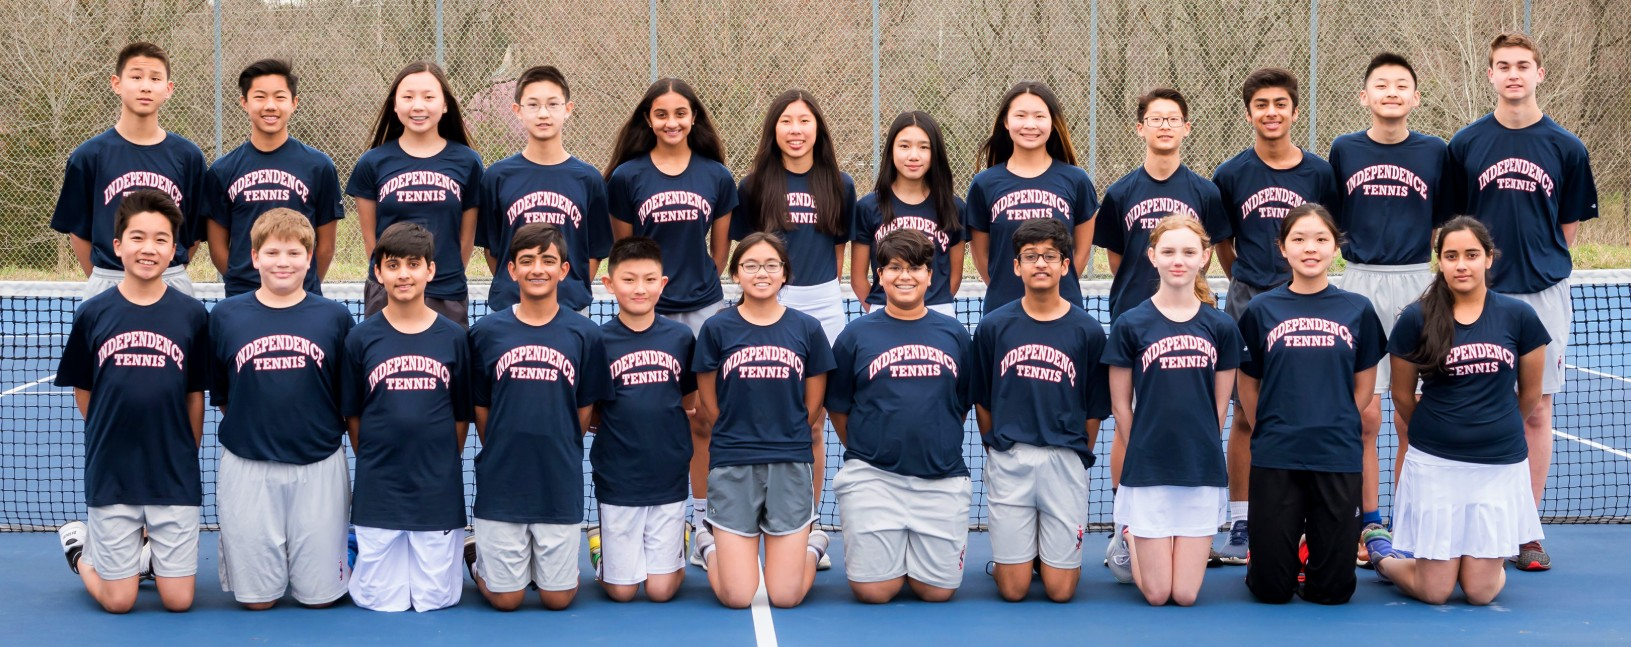 Tennis extends unbeaten streak to 8 seasons, 79 matches